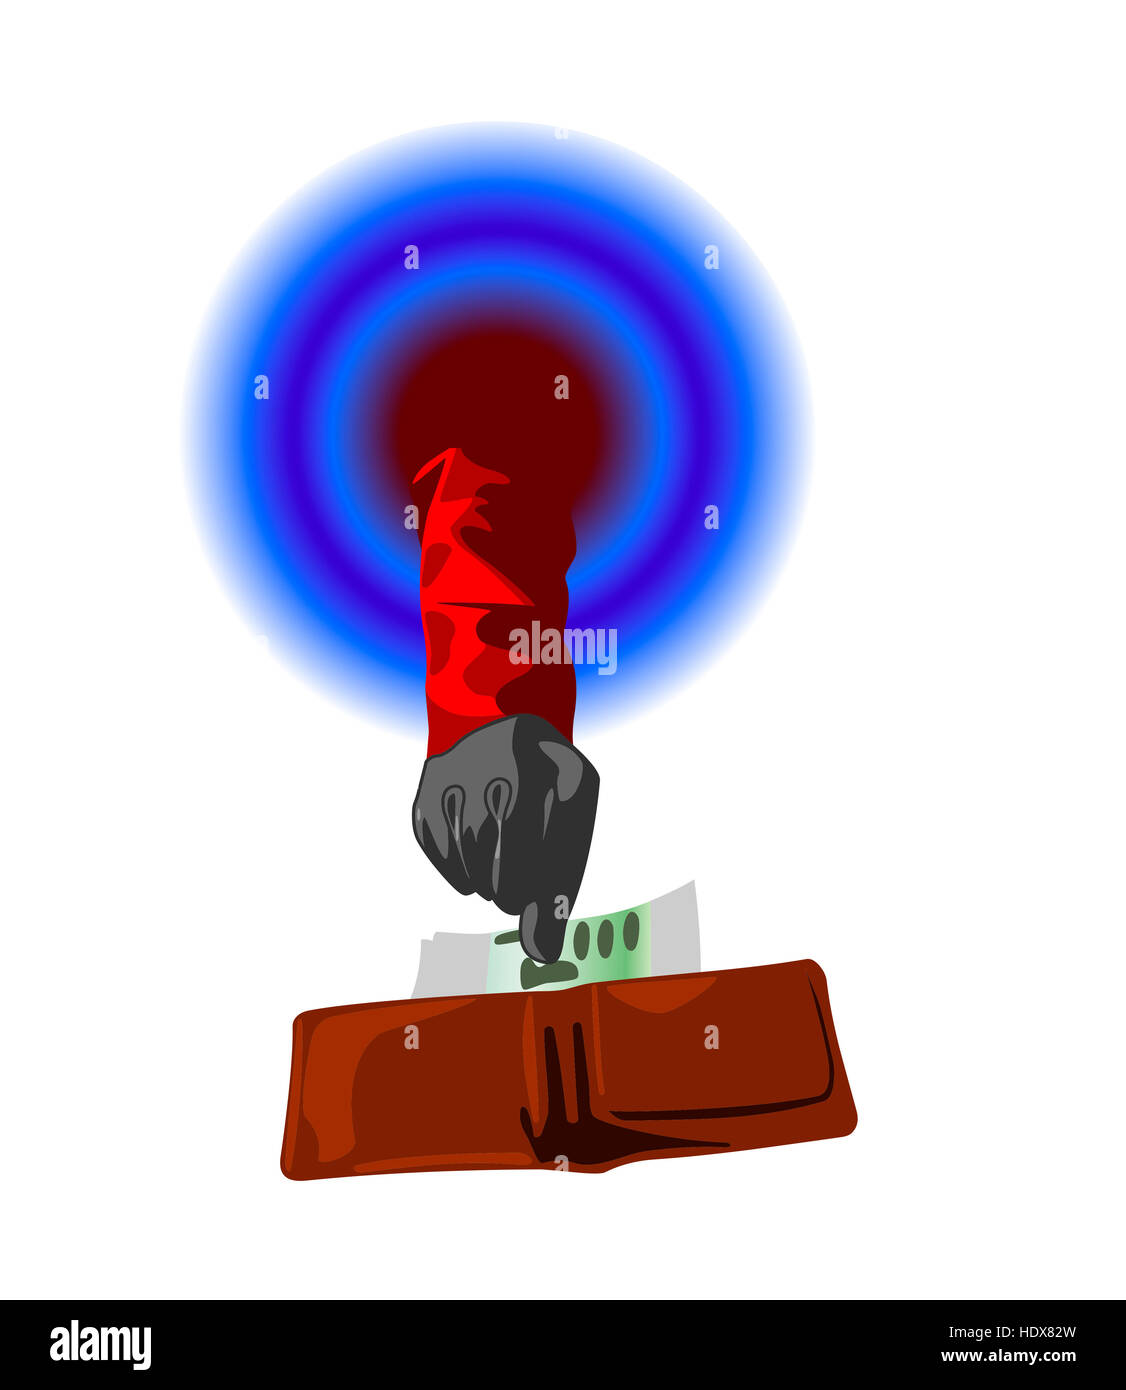 Hand wearing glove and red sleeve takes money from brown leather wallet color illustration - Stock Image